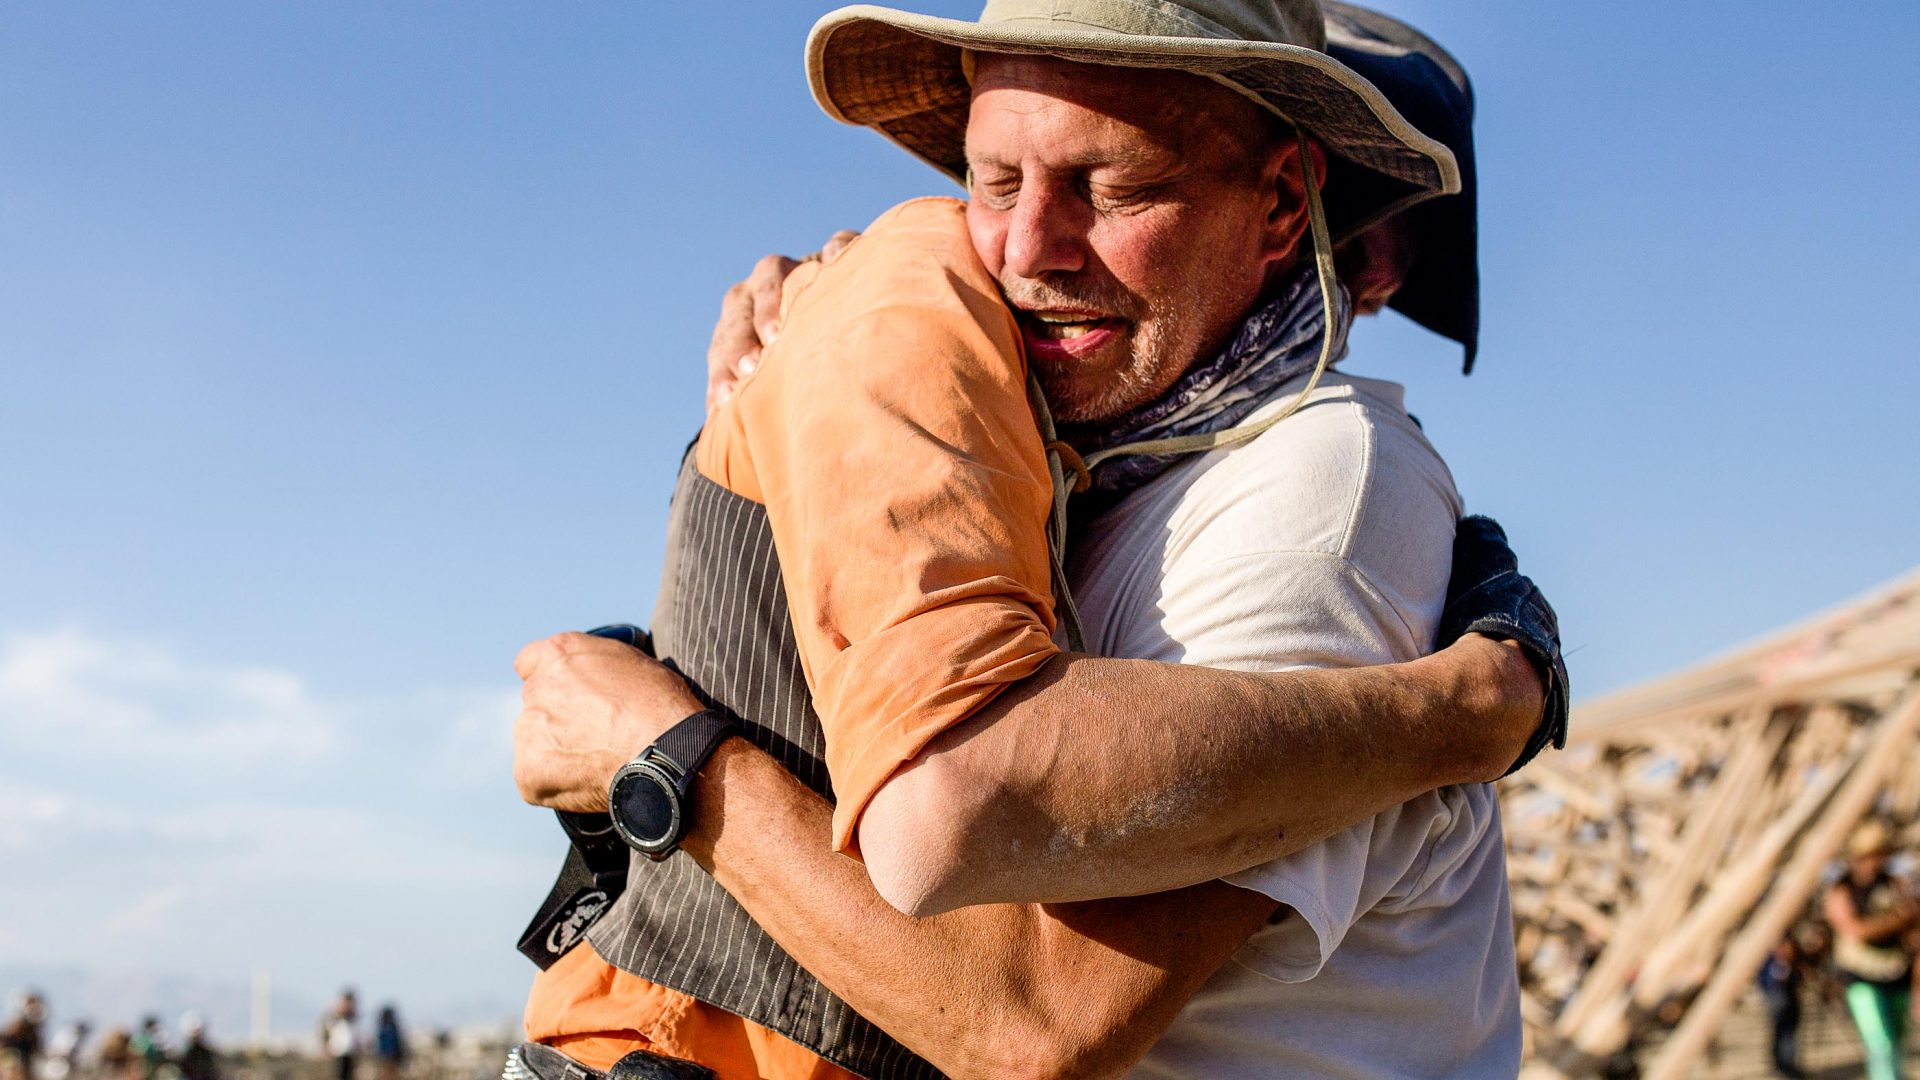 Burning Wish founder Aaron 'Slim' Muszalski hugs Bryan Monahan outside of the temple after the Survivors Walk at Burning Man.